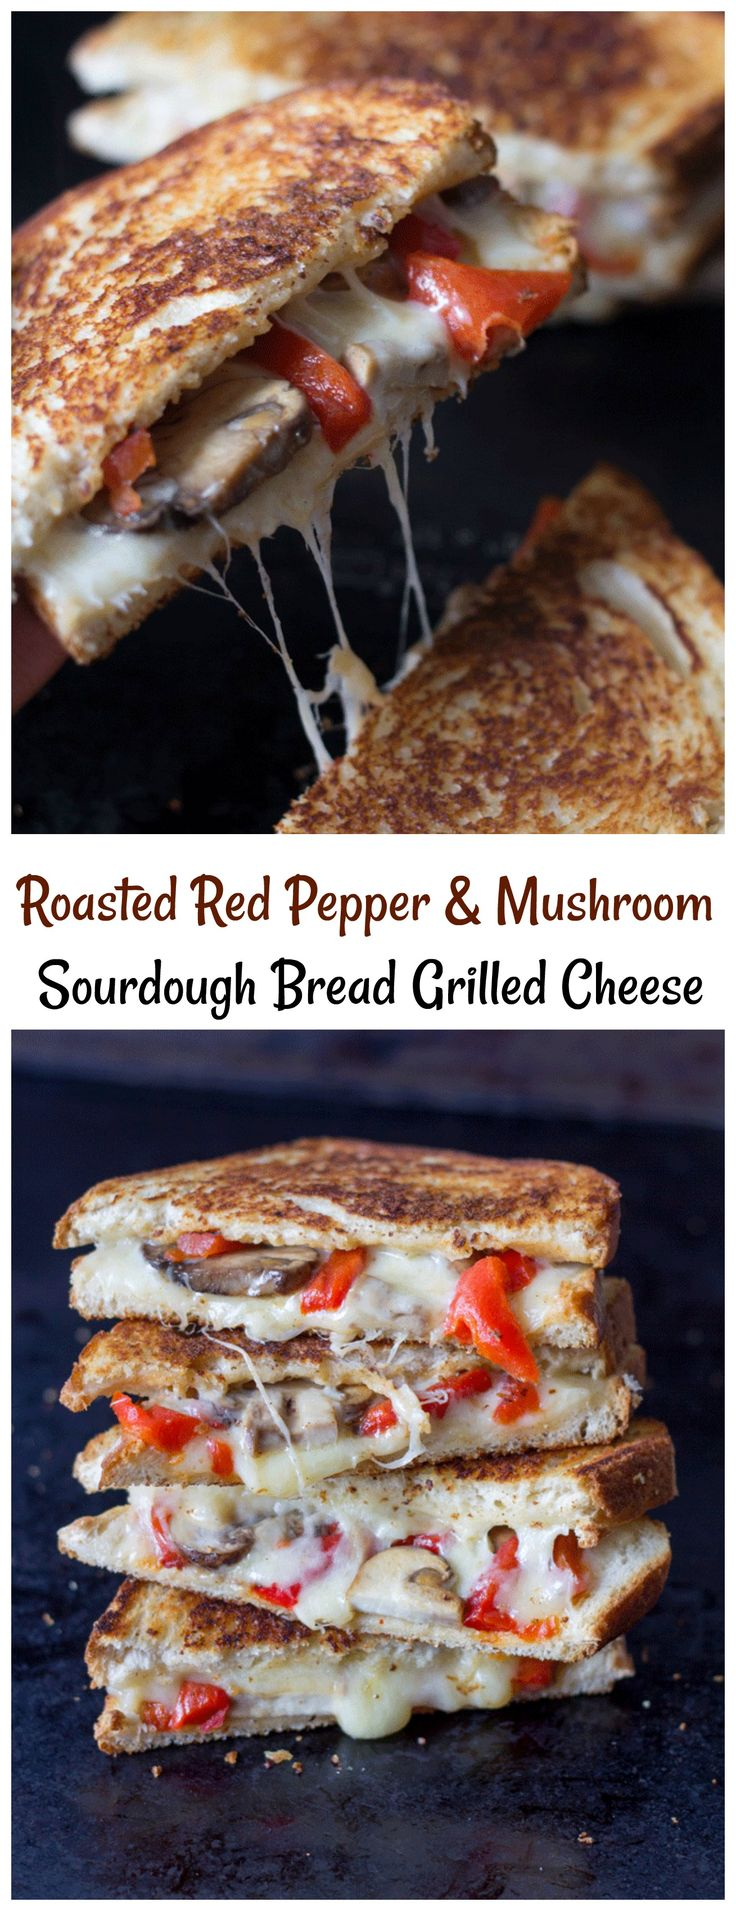 This Roasted Red Pepper Mushroom Grilled Cheese is on sourdough bread. Tastes just like a Panini but with out needing a Panini maker!